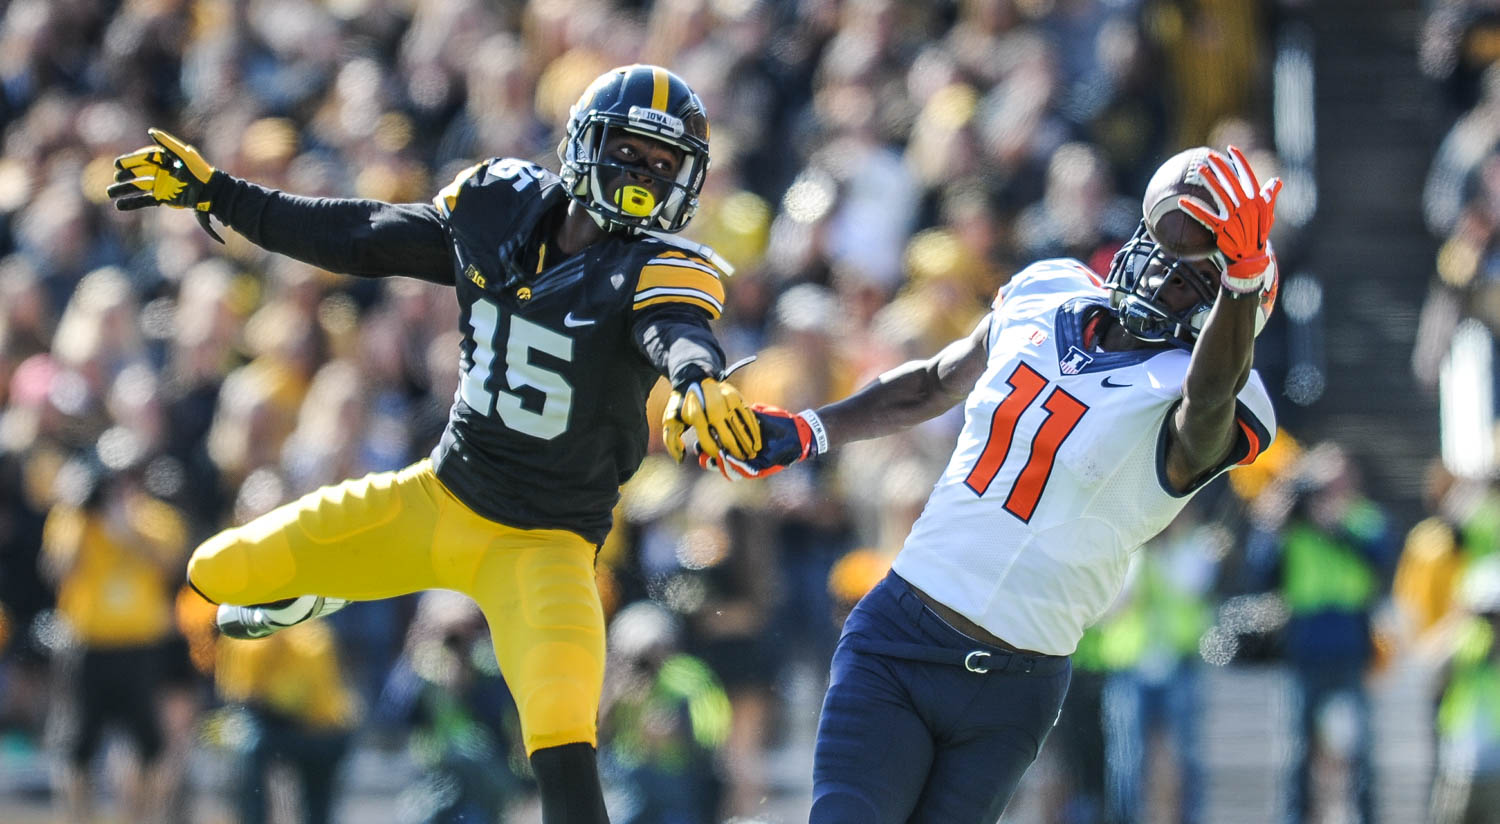 Illinois wide receiver Malik Turner eyes a catch ahead of Iowa defender Joshua Jackson during the first half of their game Saturday, October 10, 2015, at Kinnick Stadium in Iowa City. Iowa defeated the Illlini, 29-20.  (Todd Mizener - Dispatch/Argus)